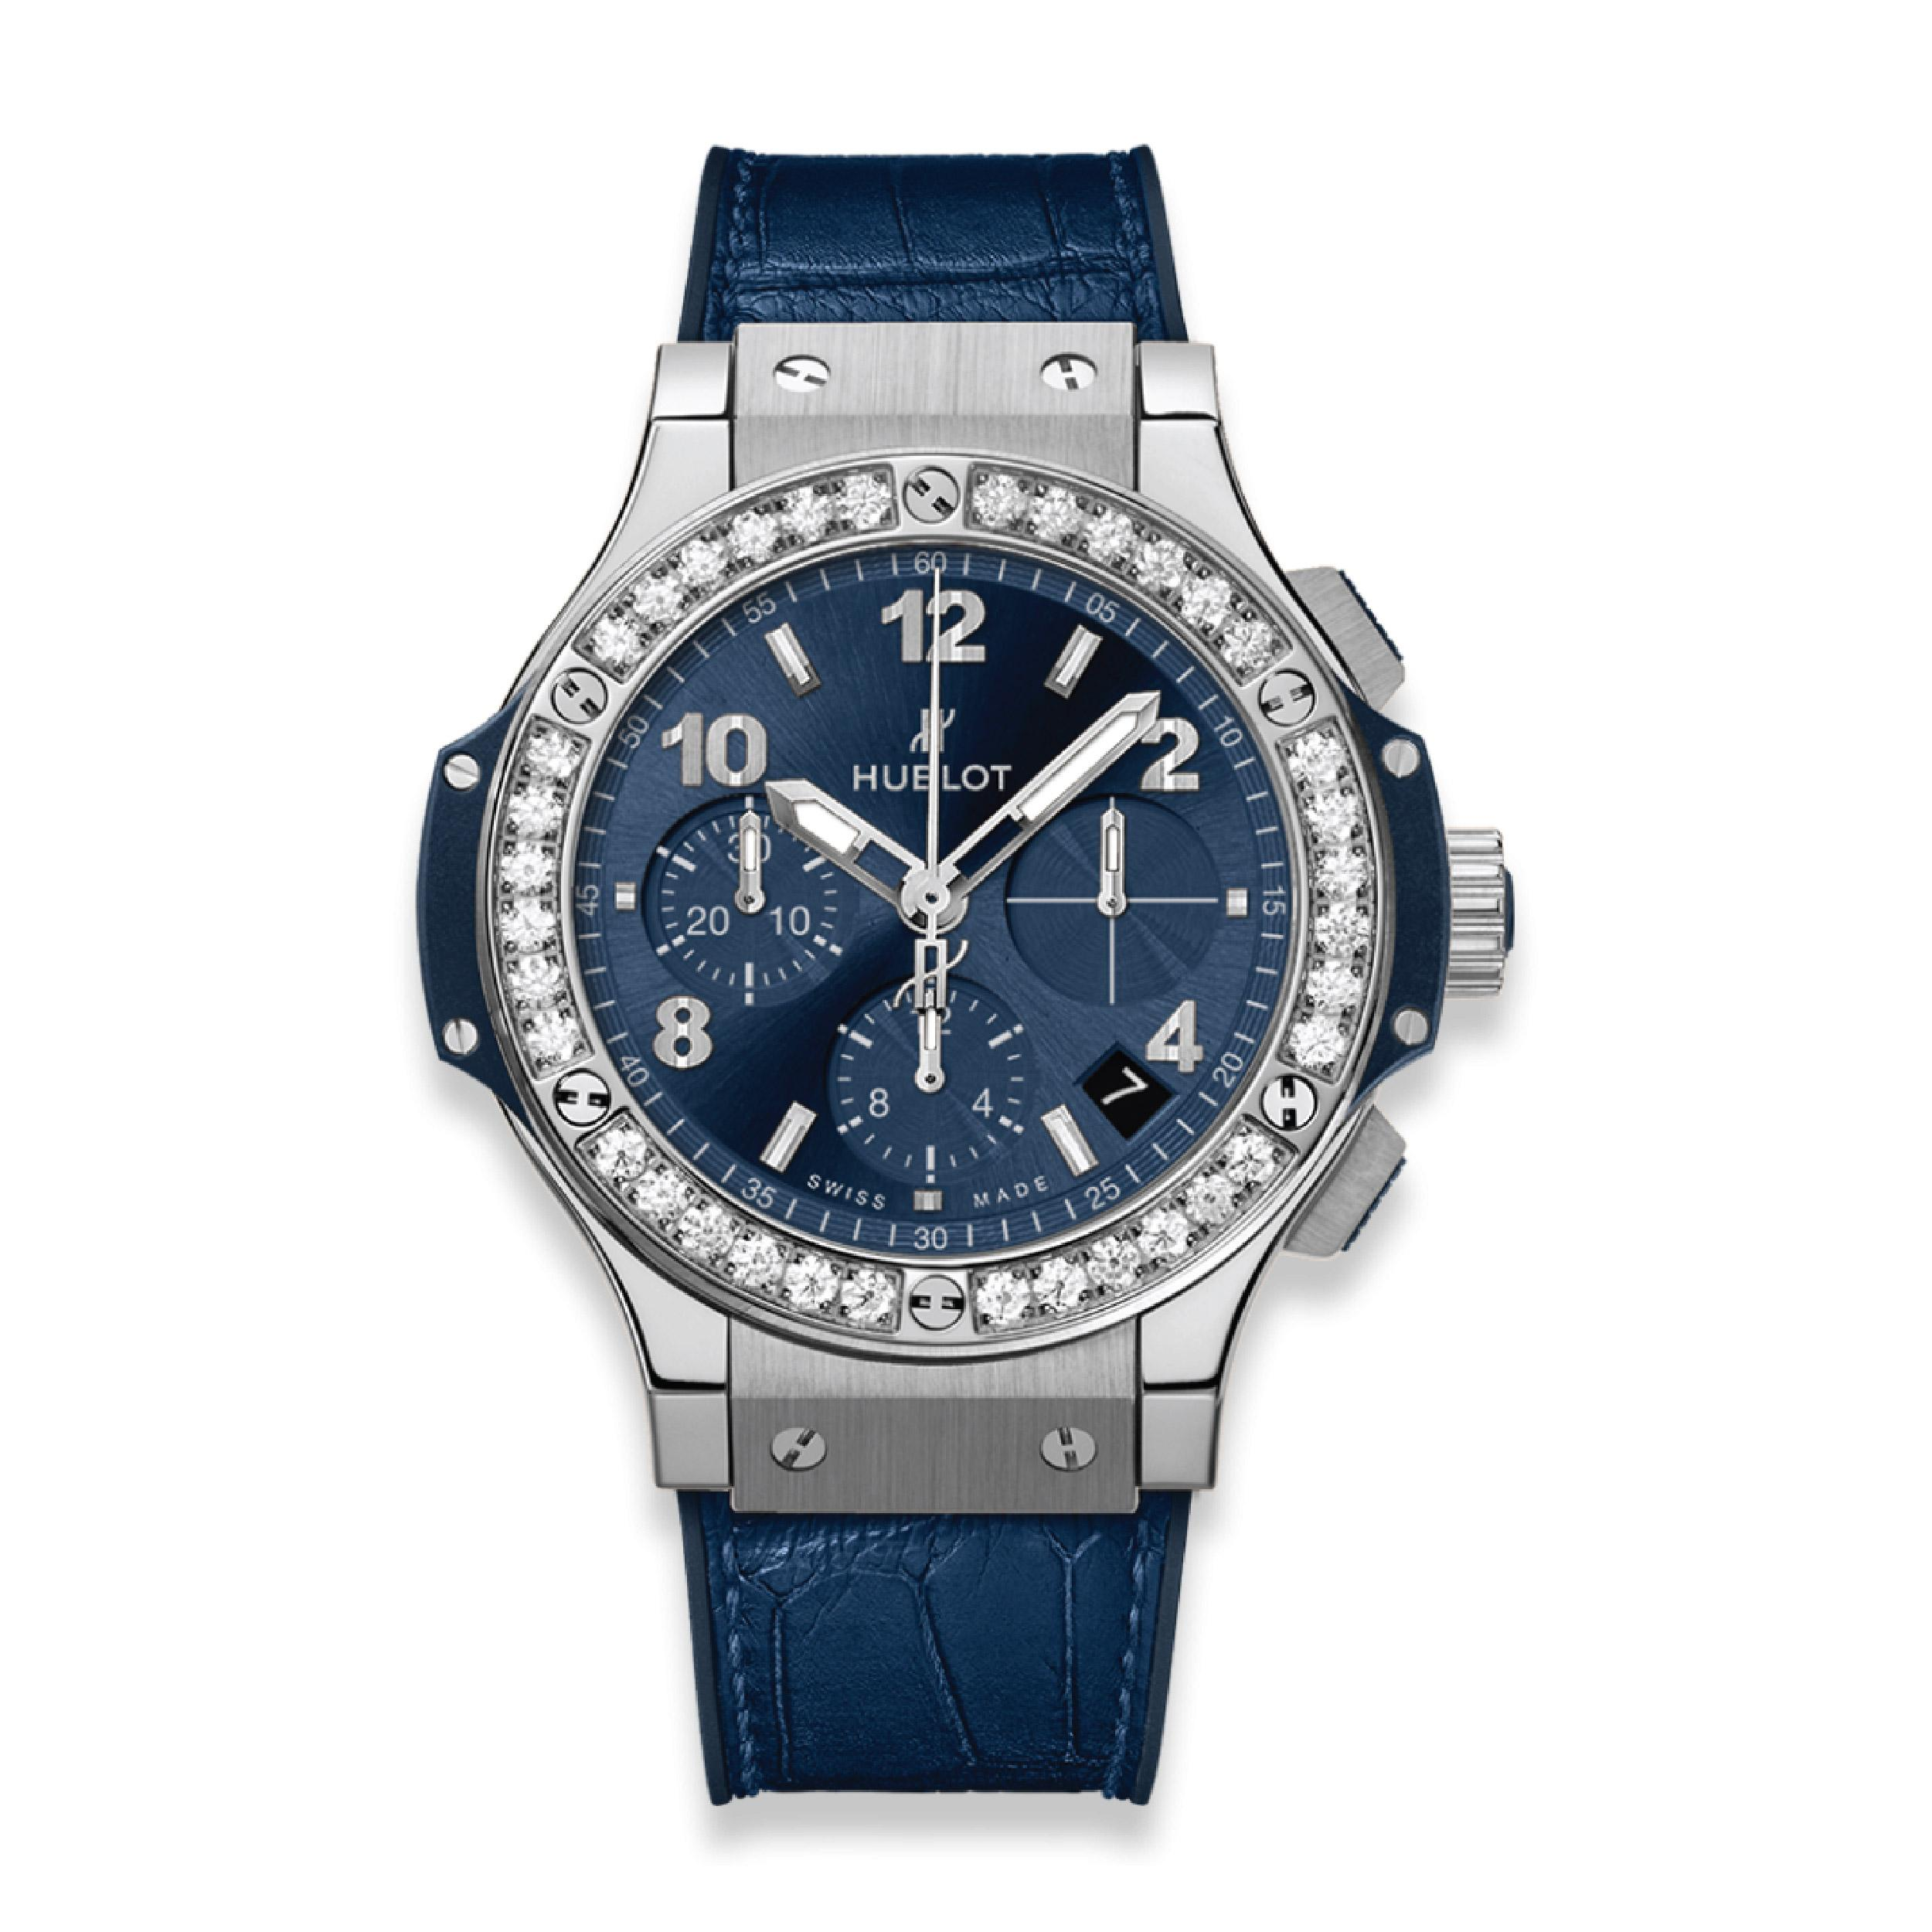 HUBLOT ЧАСЫ BIG BANG STEEL BLUE DIAMONDS 41 mm